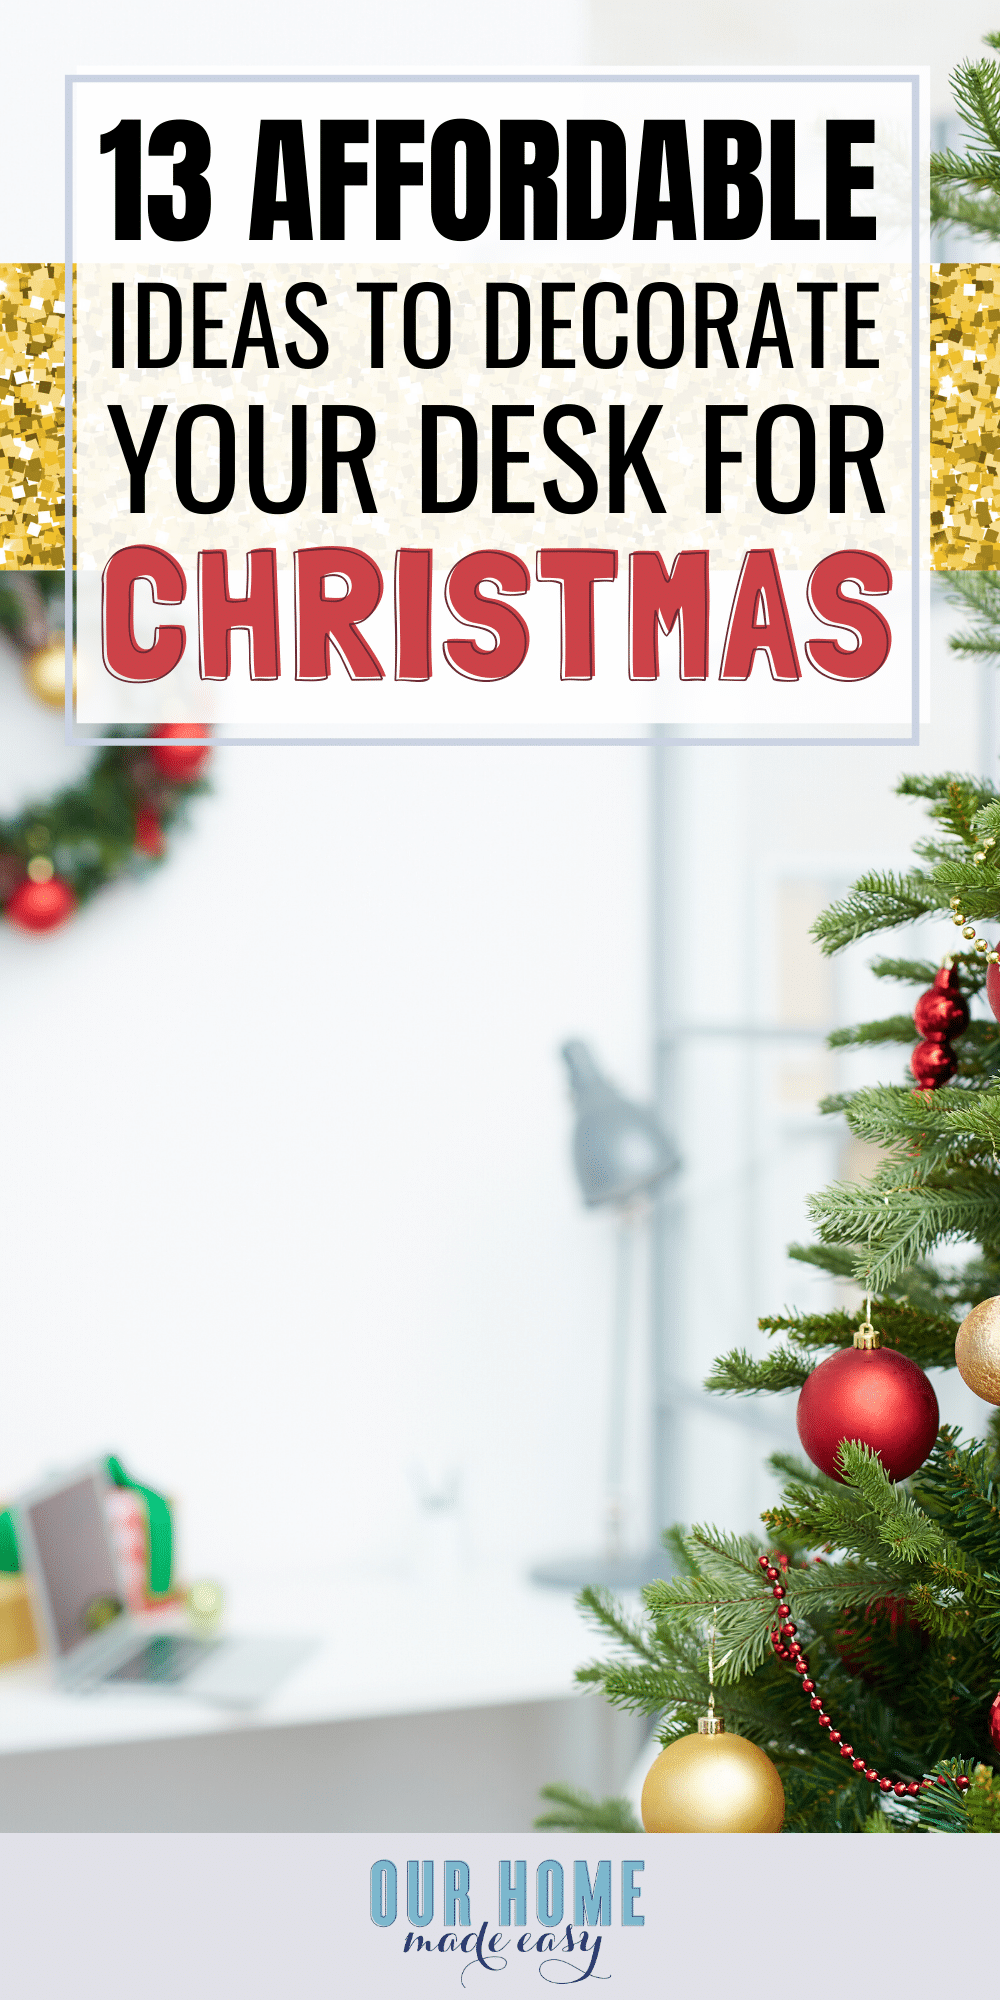 13 Affordable Ideas to Decorate Your Office for Christmas!